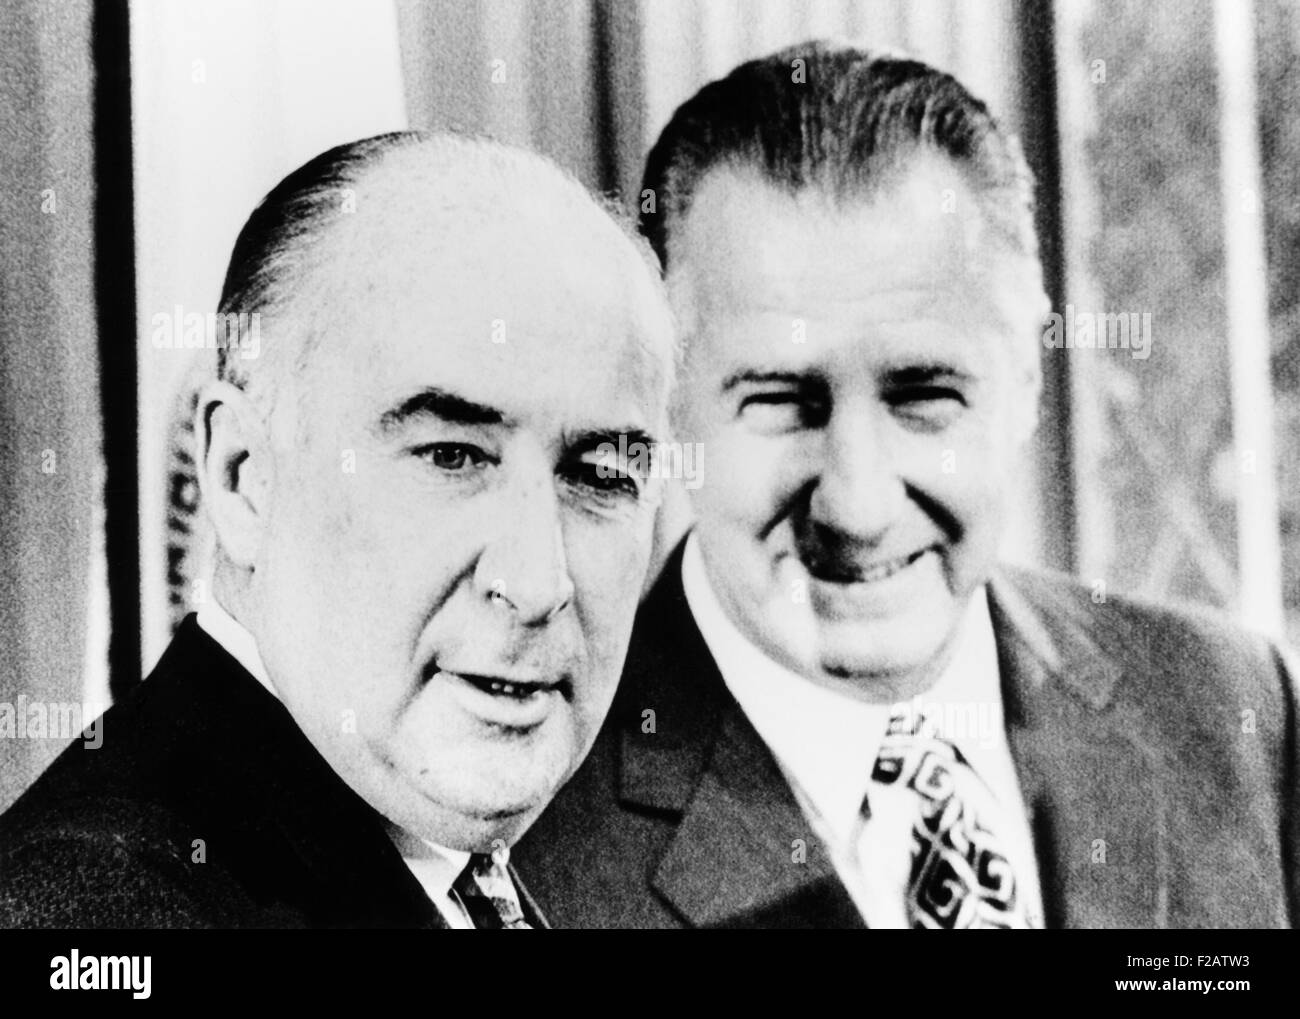 Atty. Gen. John Mitchell (left) and VP Spiro Agnew announced program fight street crime and burglary. Jan. 13, 1972. - Stock Image